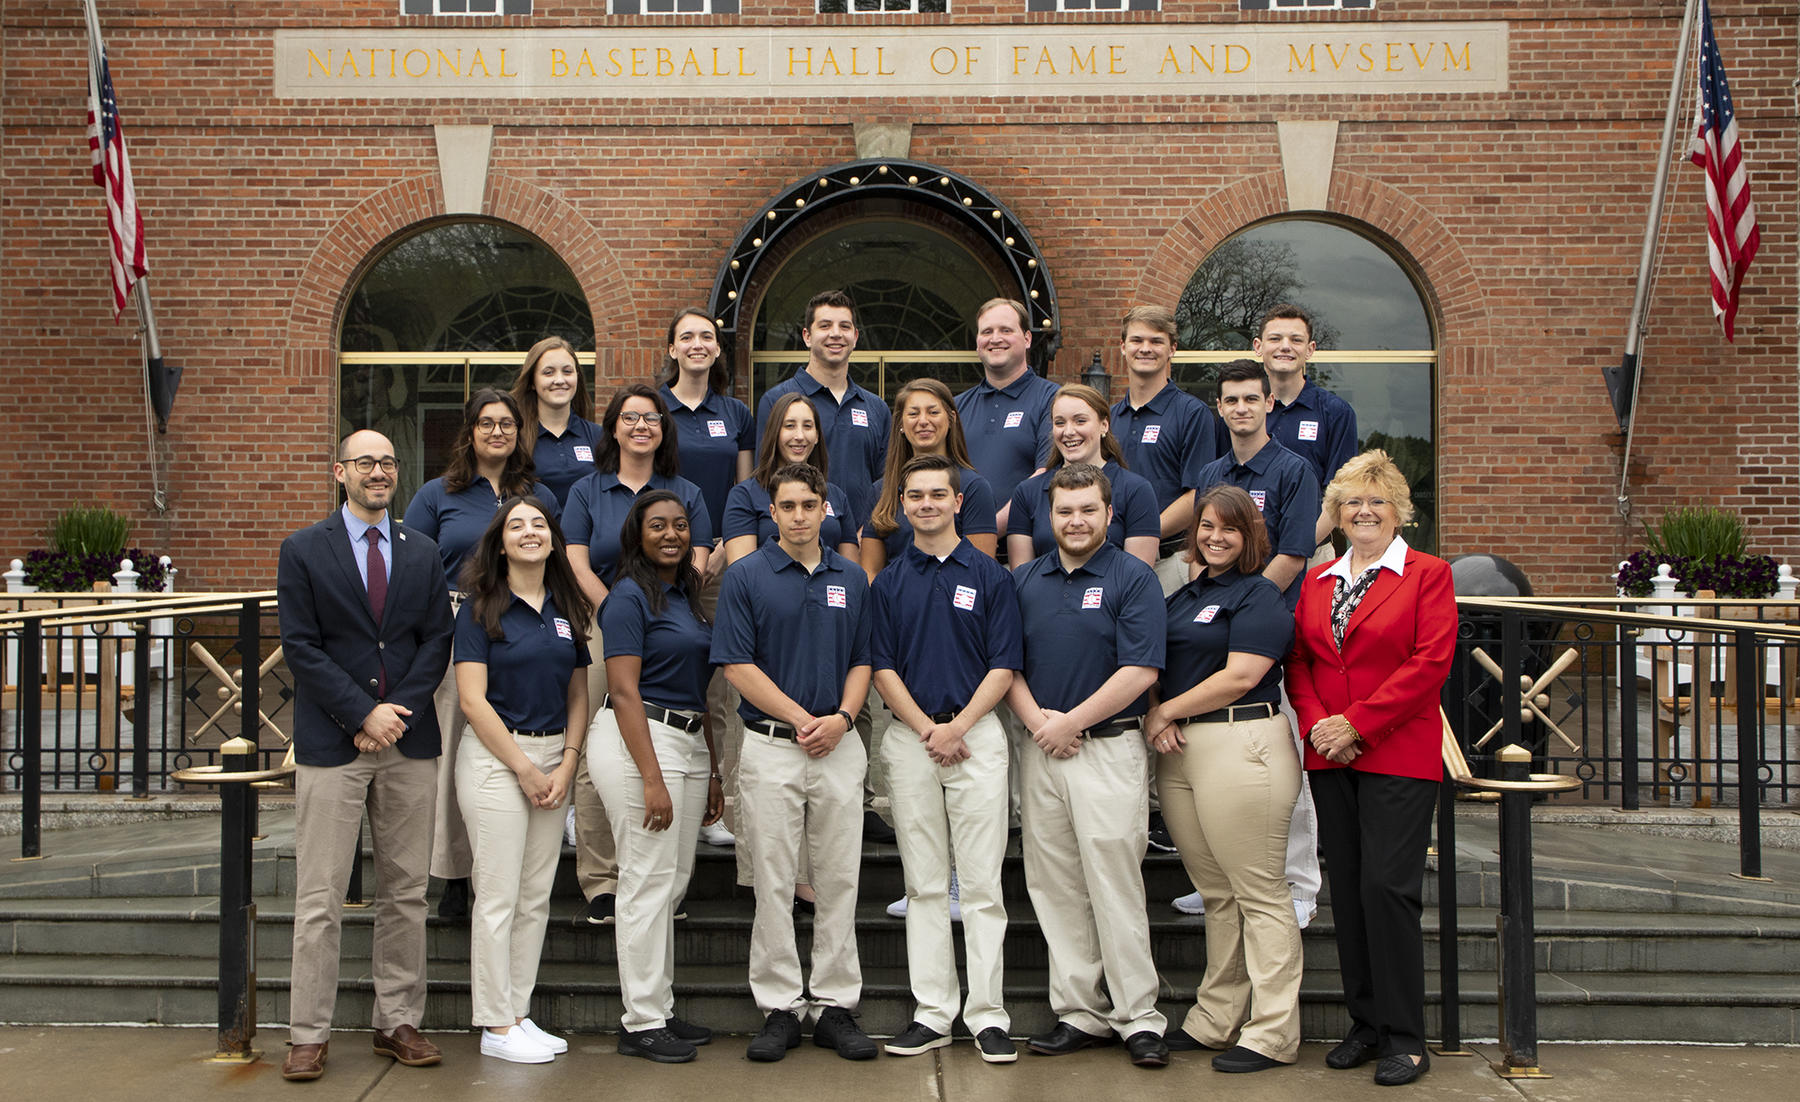 The Steele Intern Class of 2019 at the Hall of Fame includes: Back row, from left: Janey Murray, Kristina Abicca, Jerry Goosenberg, Matthew Carter, Garrett Allen, Patrick LaBella. Middle row, from left: Mickey Lanning, Presley Favre, Sara Bennett, Jenna Guenther, Erin Carmody, Anthony DeSimone. Front row, from left: Hall of Fame Vice President of Communications and Education Jon Shestakofsky, Leah Buhagiar, Kallan Jackson, Michael Belmont, Eric St. Peter, John Sullivan, Rachel Kingham, Program Founder Peggy Steele. (Milo Stewart Jr./National Baseball Hall of Fame and Museum)